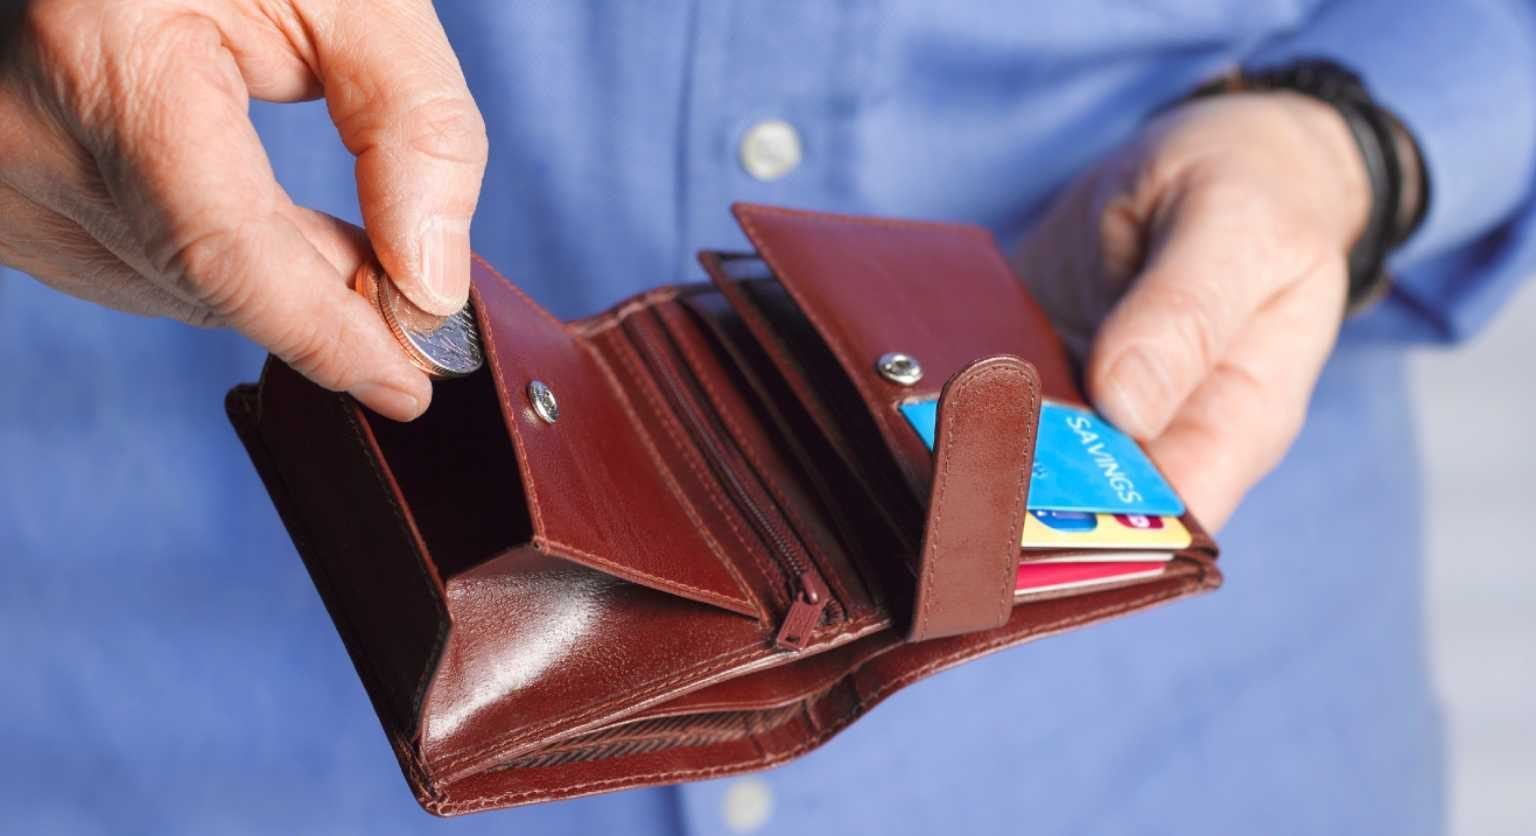 Taking coins from a wallet